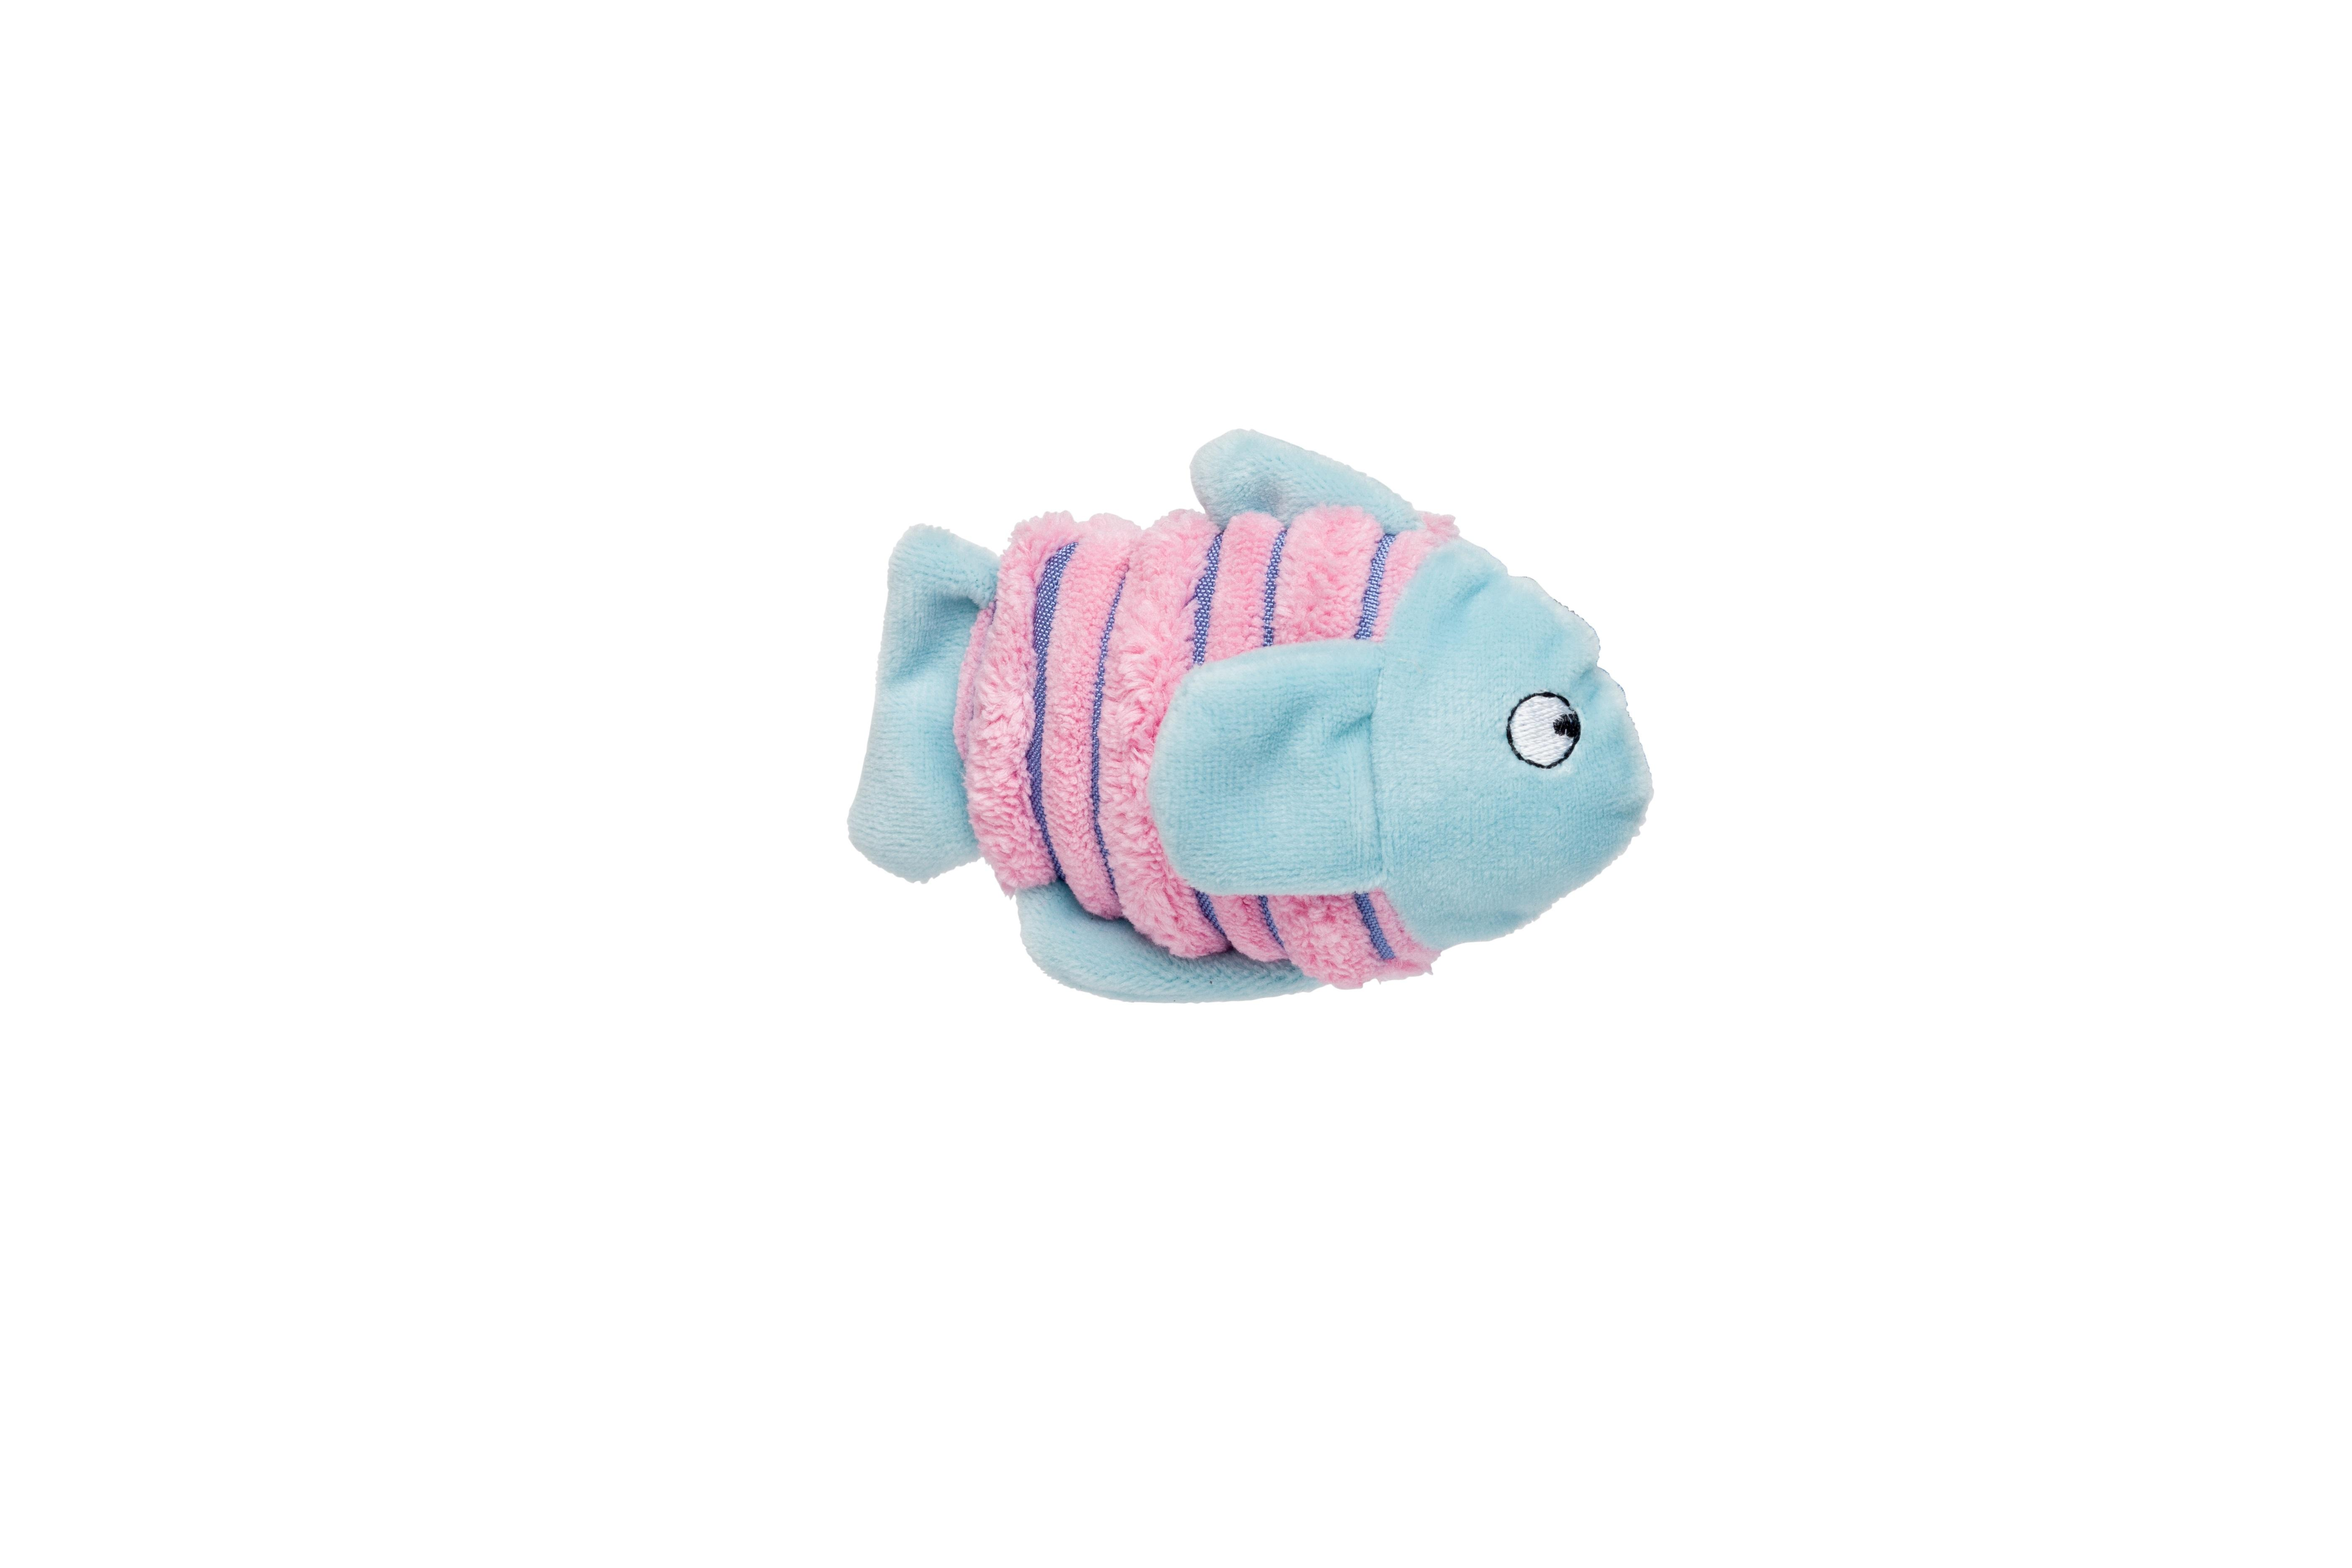 Bud'z Fish Cat Toy, Pink/Blue, 11.43-cm